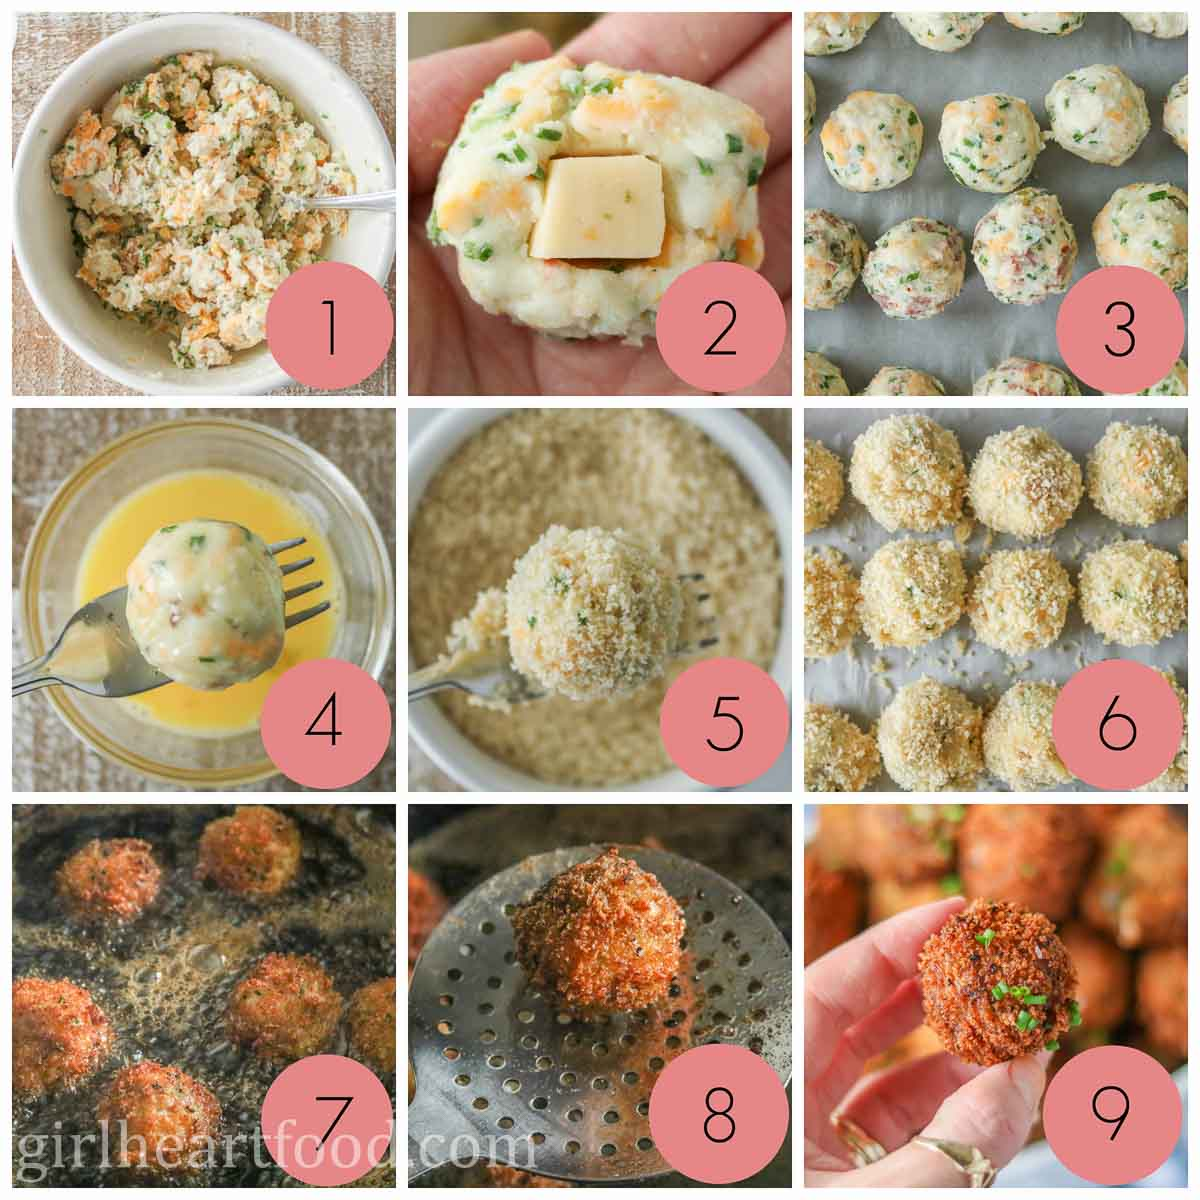 Collage of steps to make cheese-stuffed fried mashed potato balls.